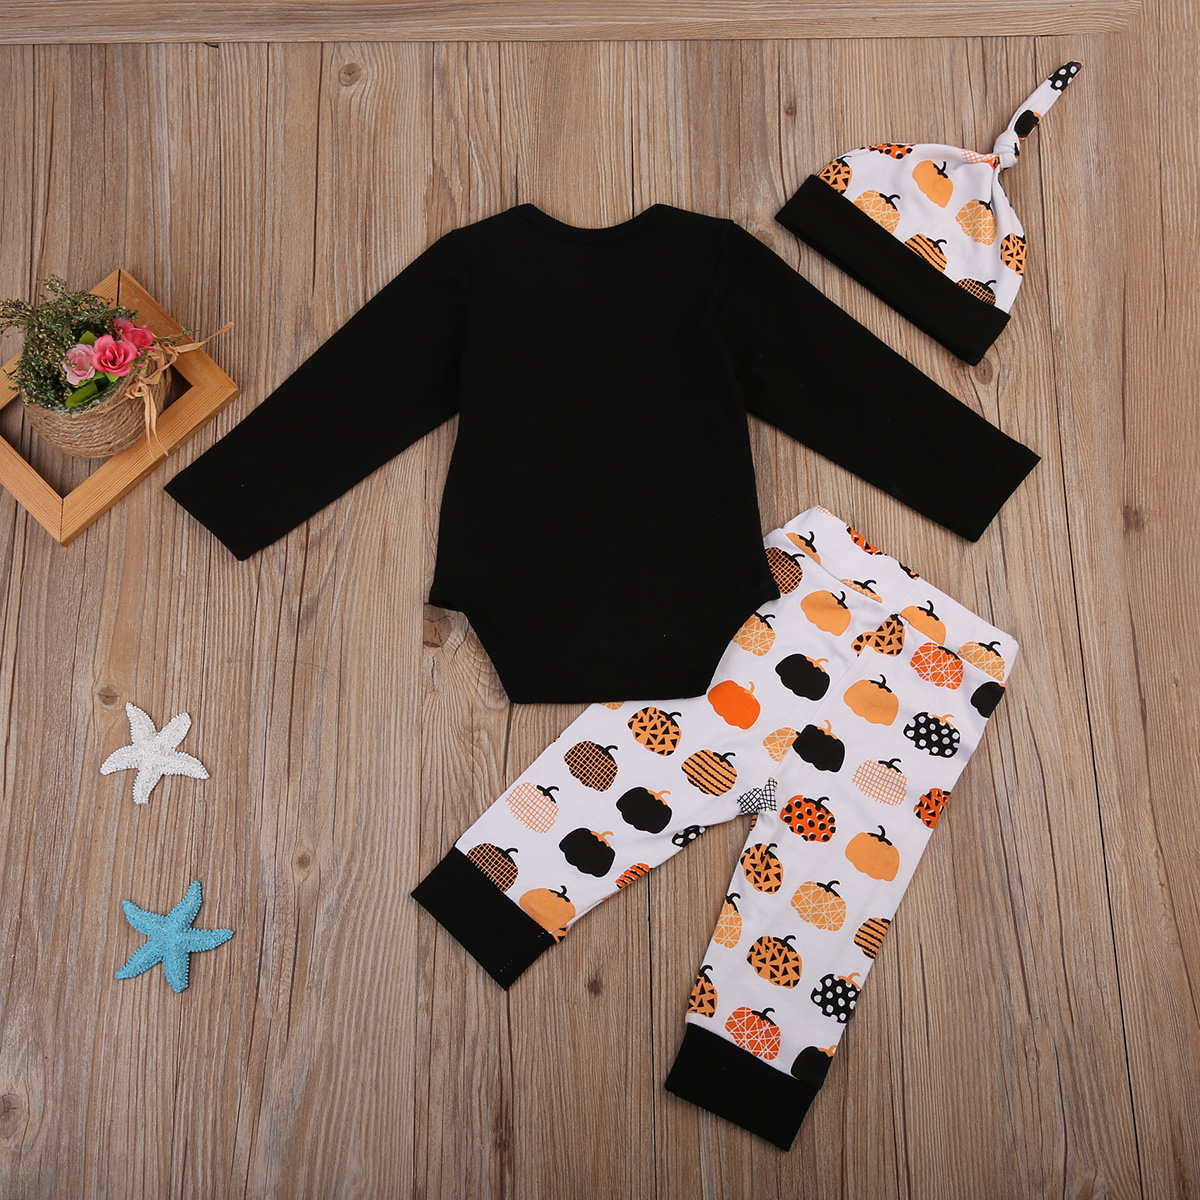 17 Cute Halloween Newborn Baby Boys Girls Winter Clothes Long Sleeve Romper Pants Leggings Cotton Pumpkin Print Outfit 3pcs 4